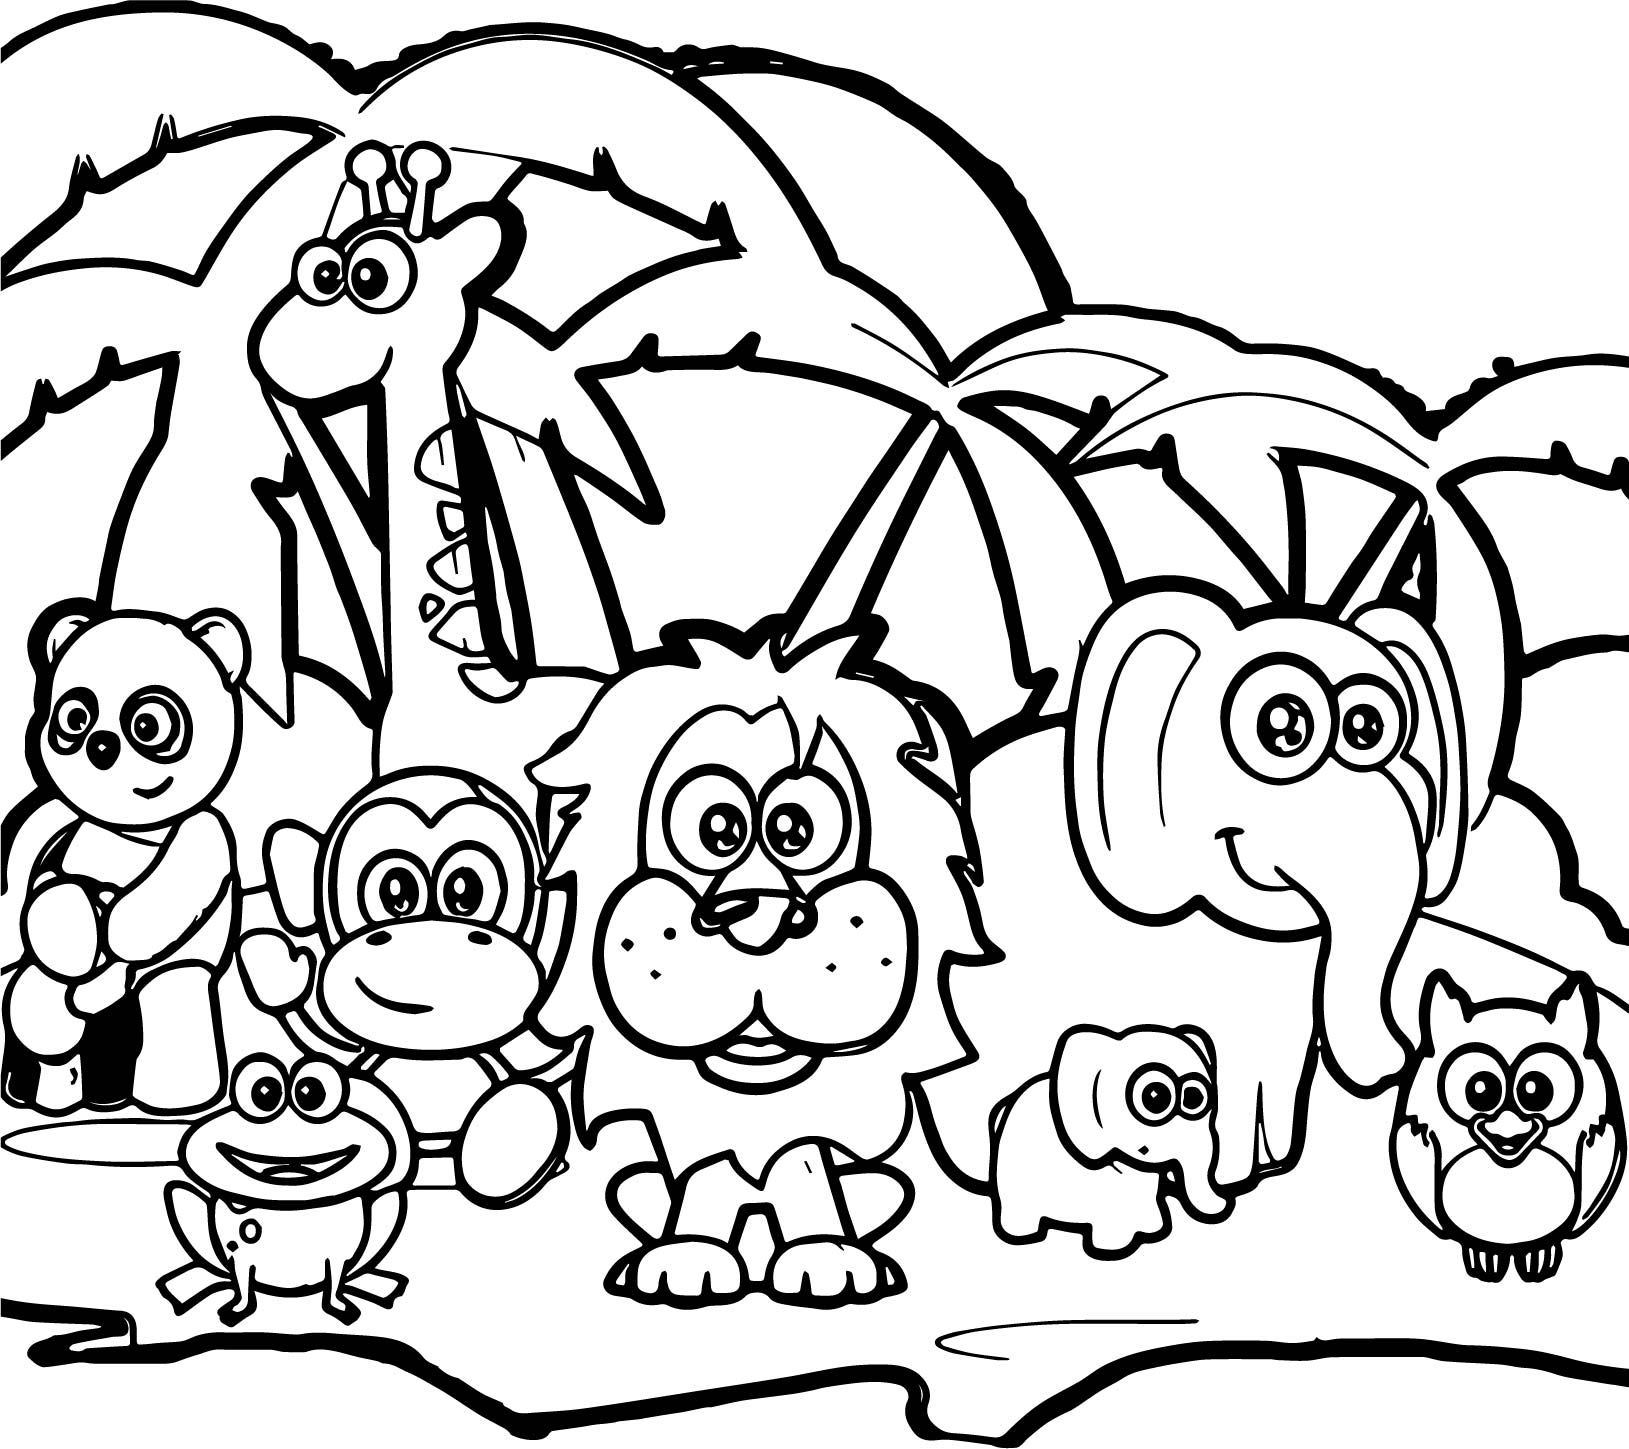 Abc forest animal coloring page for Animals coloring page